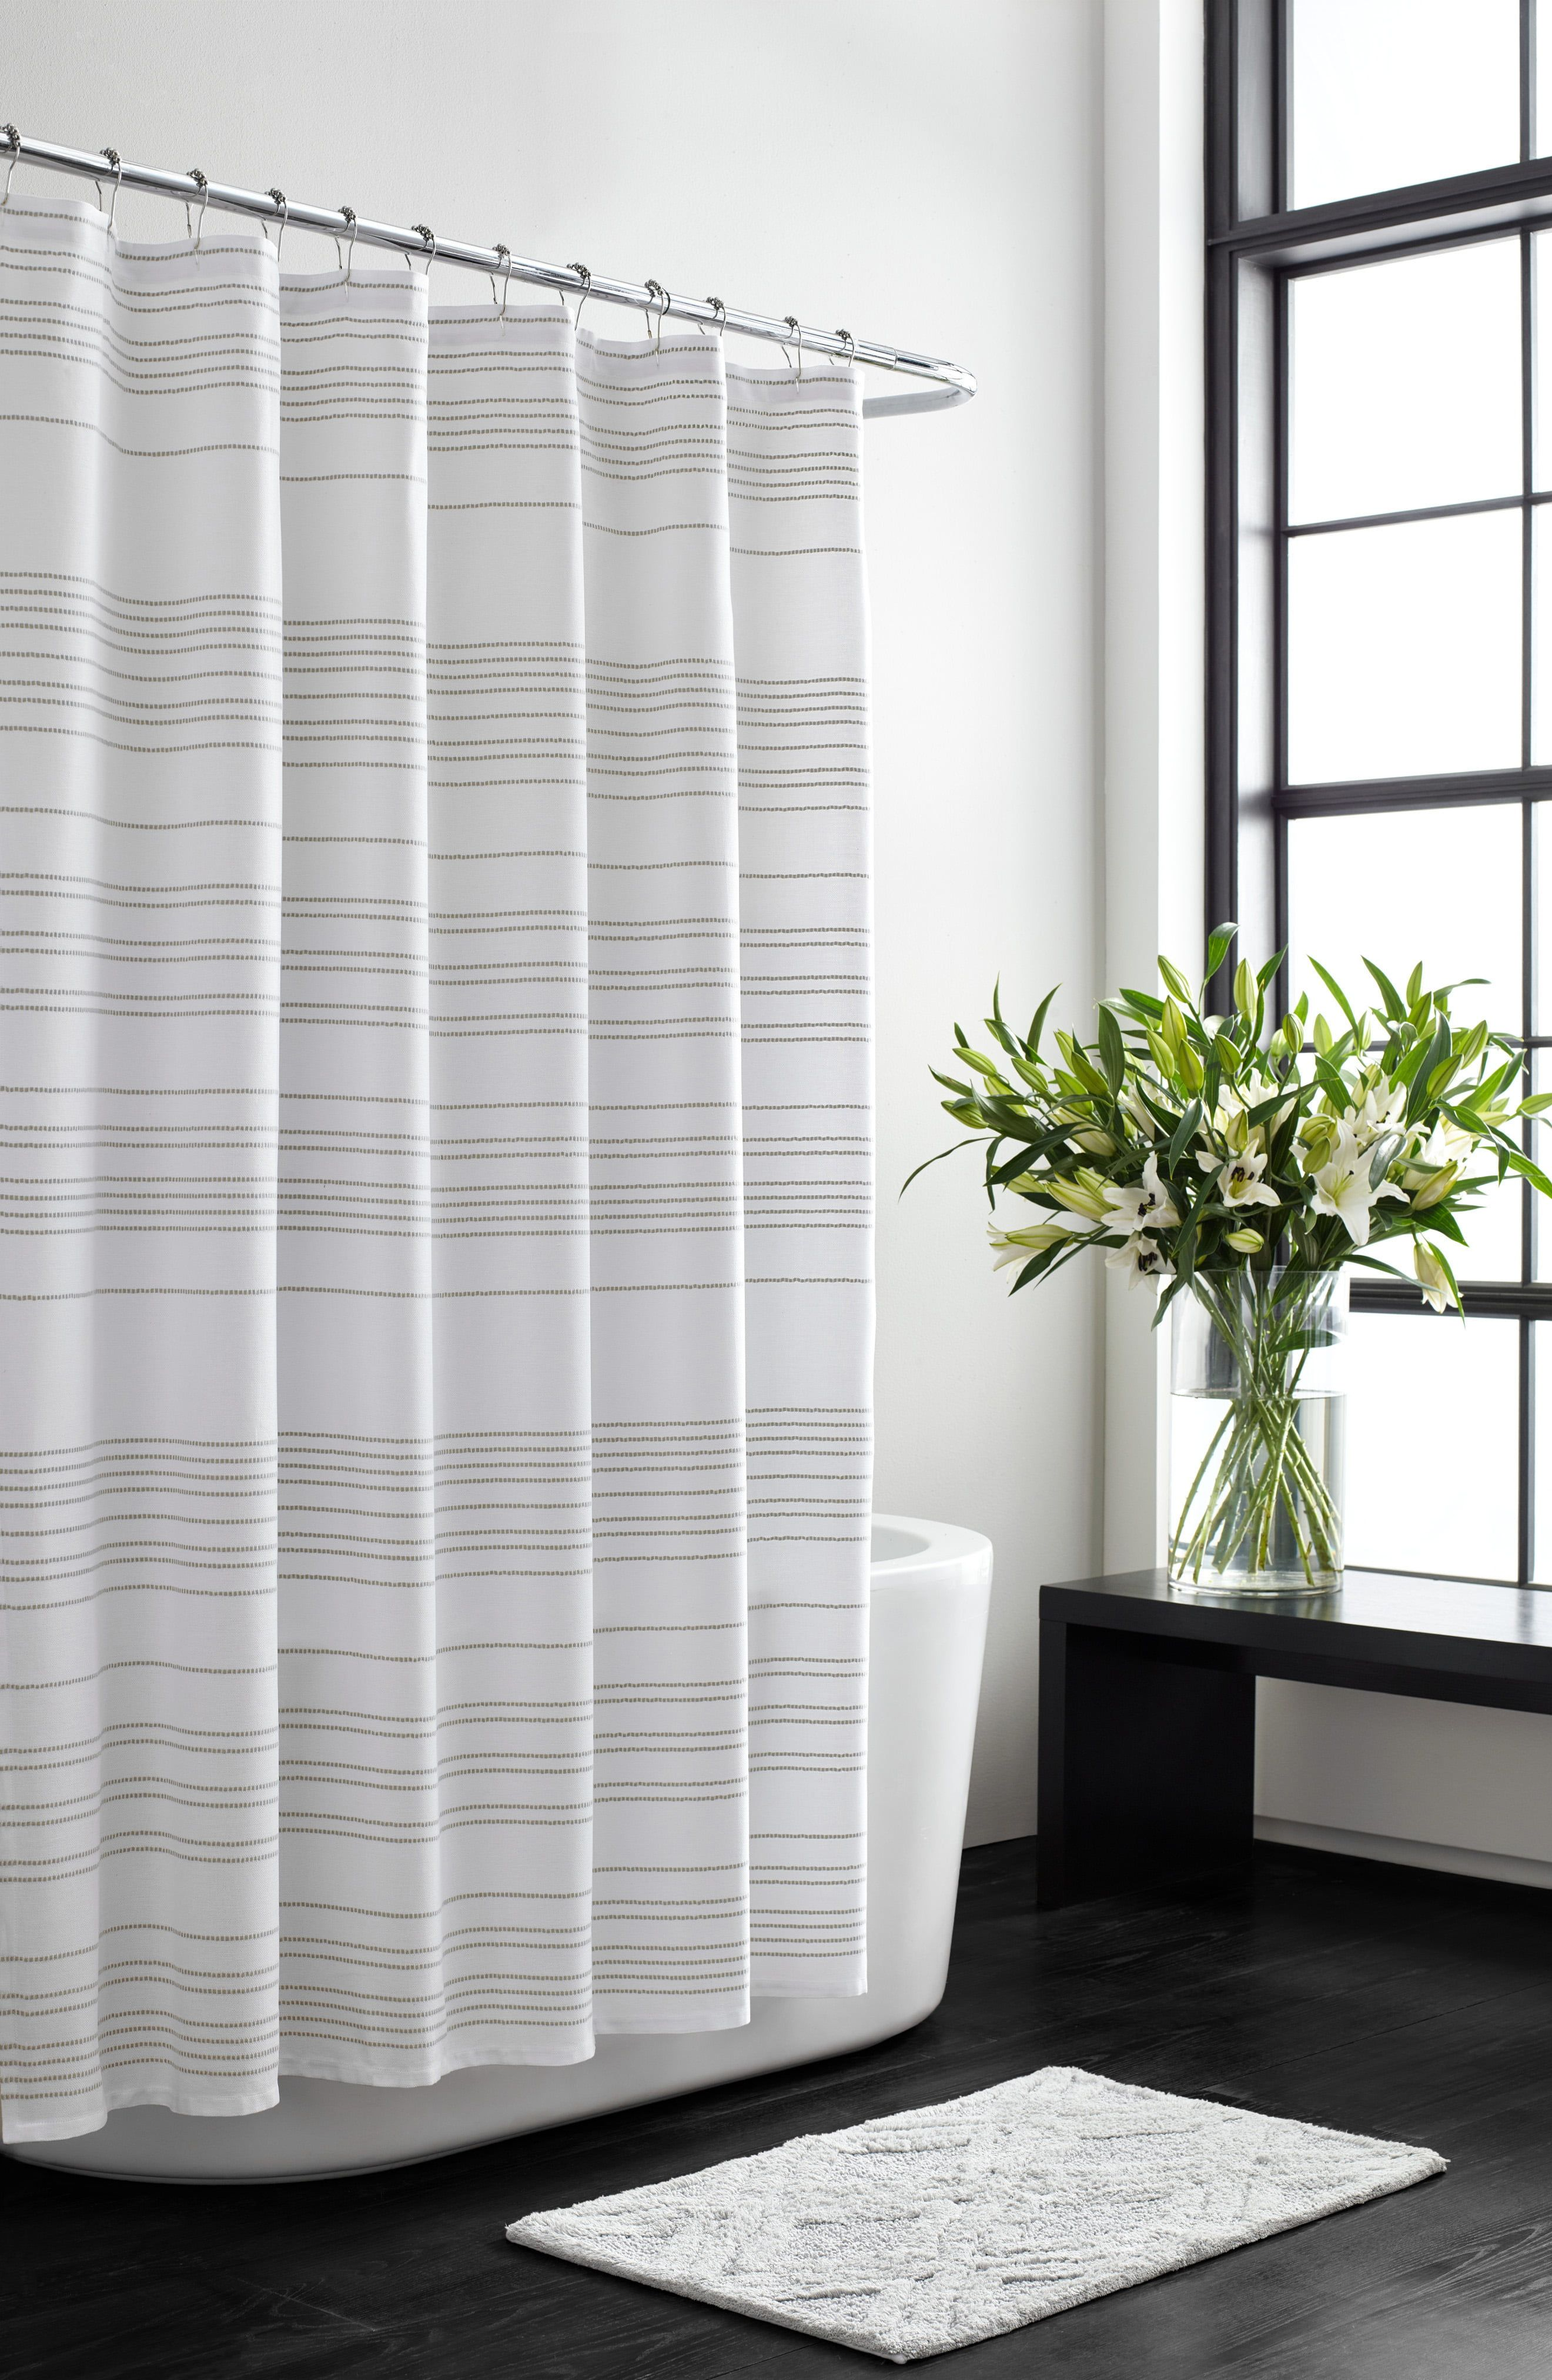 Vera Wang Embroidered Stripe Shower Curtain Size One Size White Striped Shower Curtains Cotton Shower Curtain